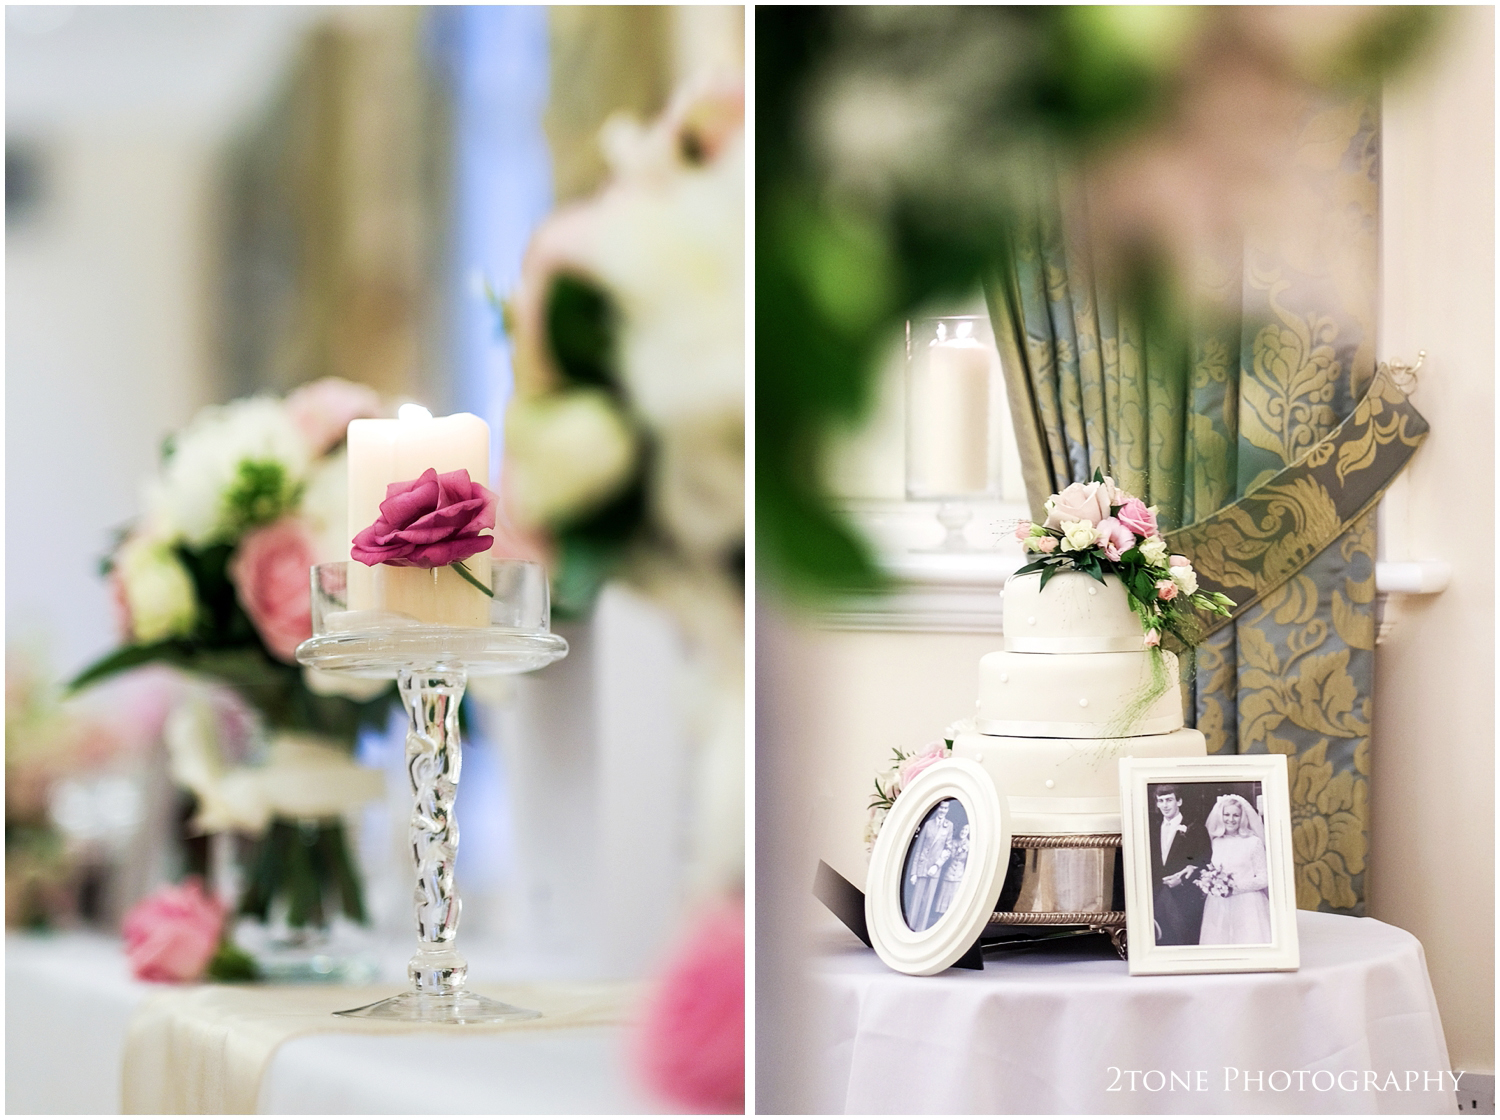 A little nostalgia added for good measure with photographs next to the wedding cake of both of their parents on their wedding days.